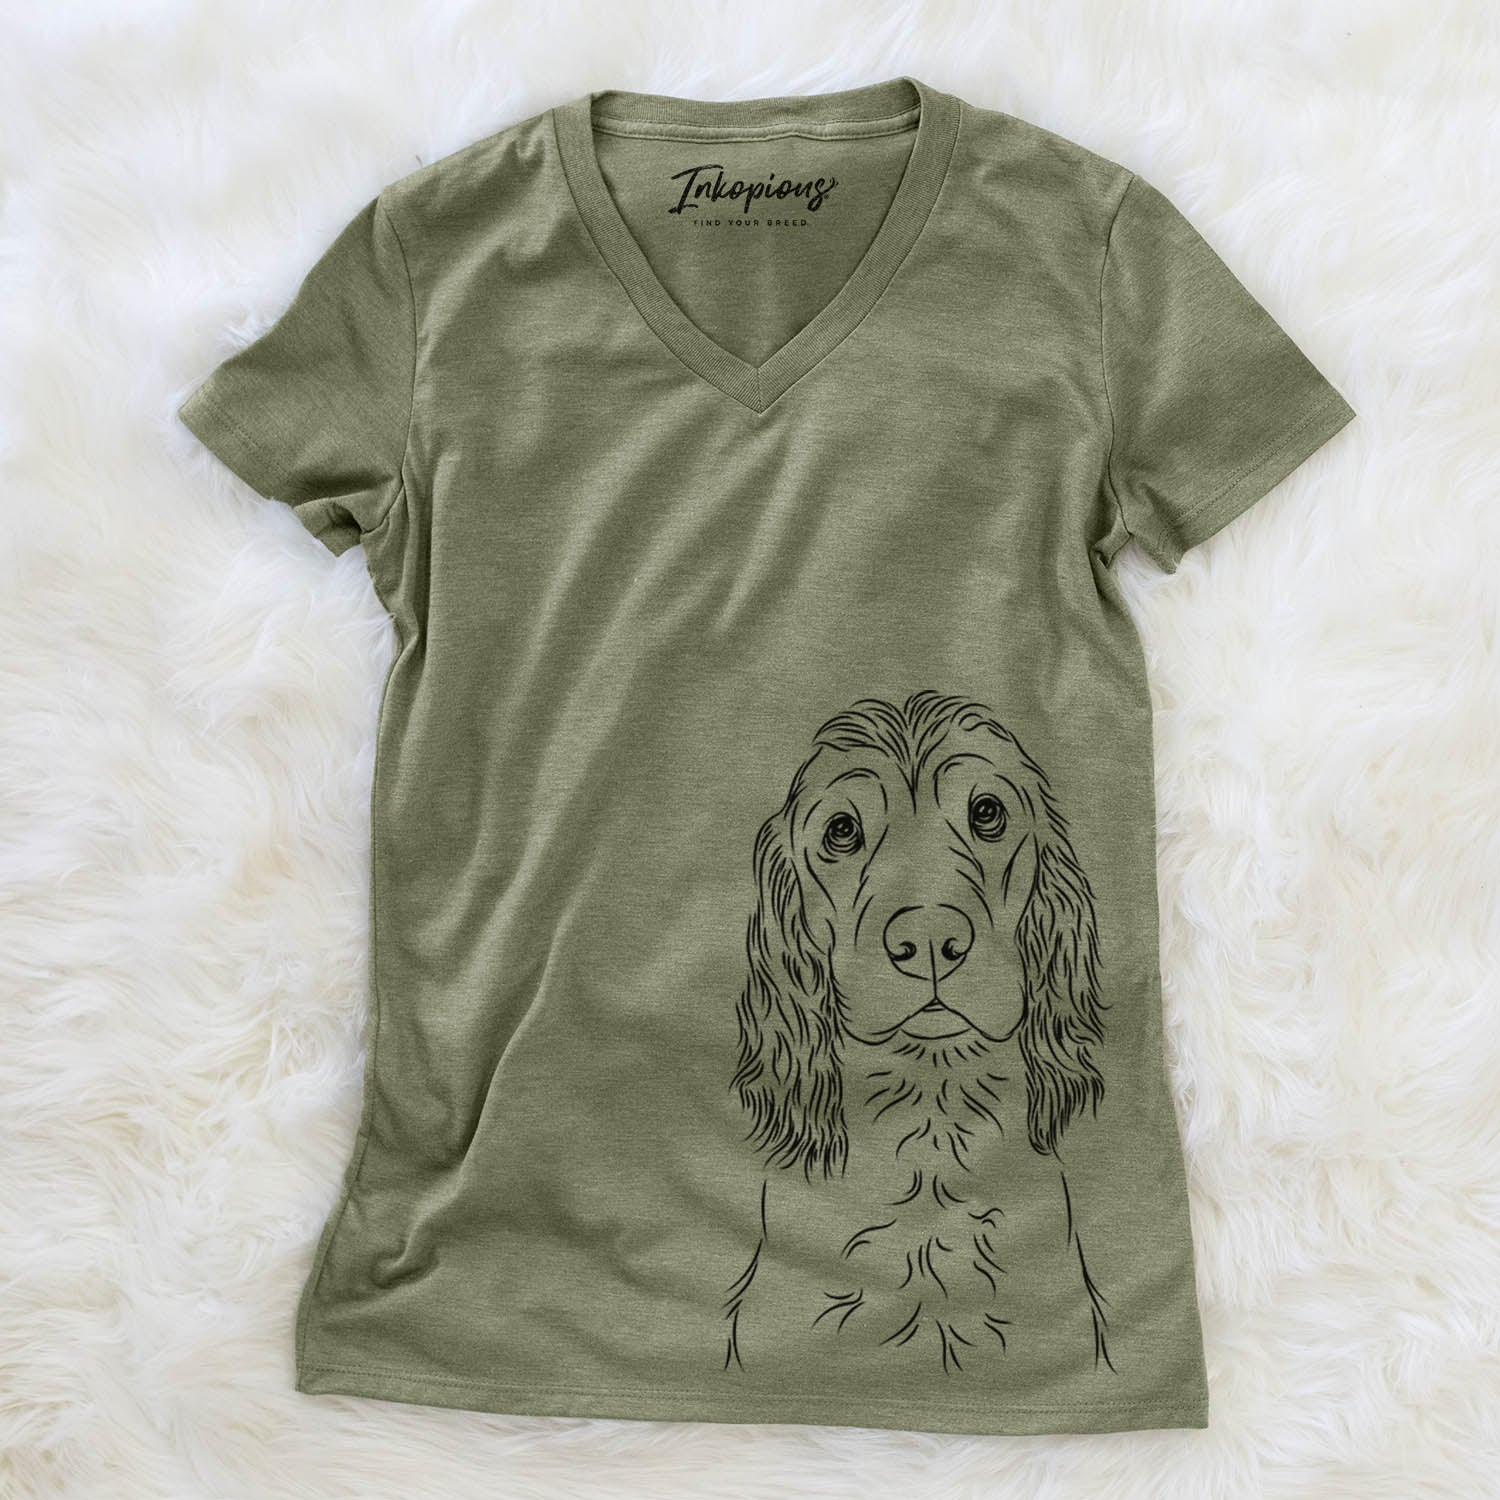 Logan the English Cocker Spaniel - Women's Modern Fit V-neck Shirt